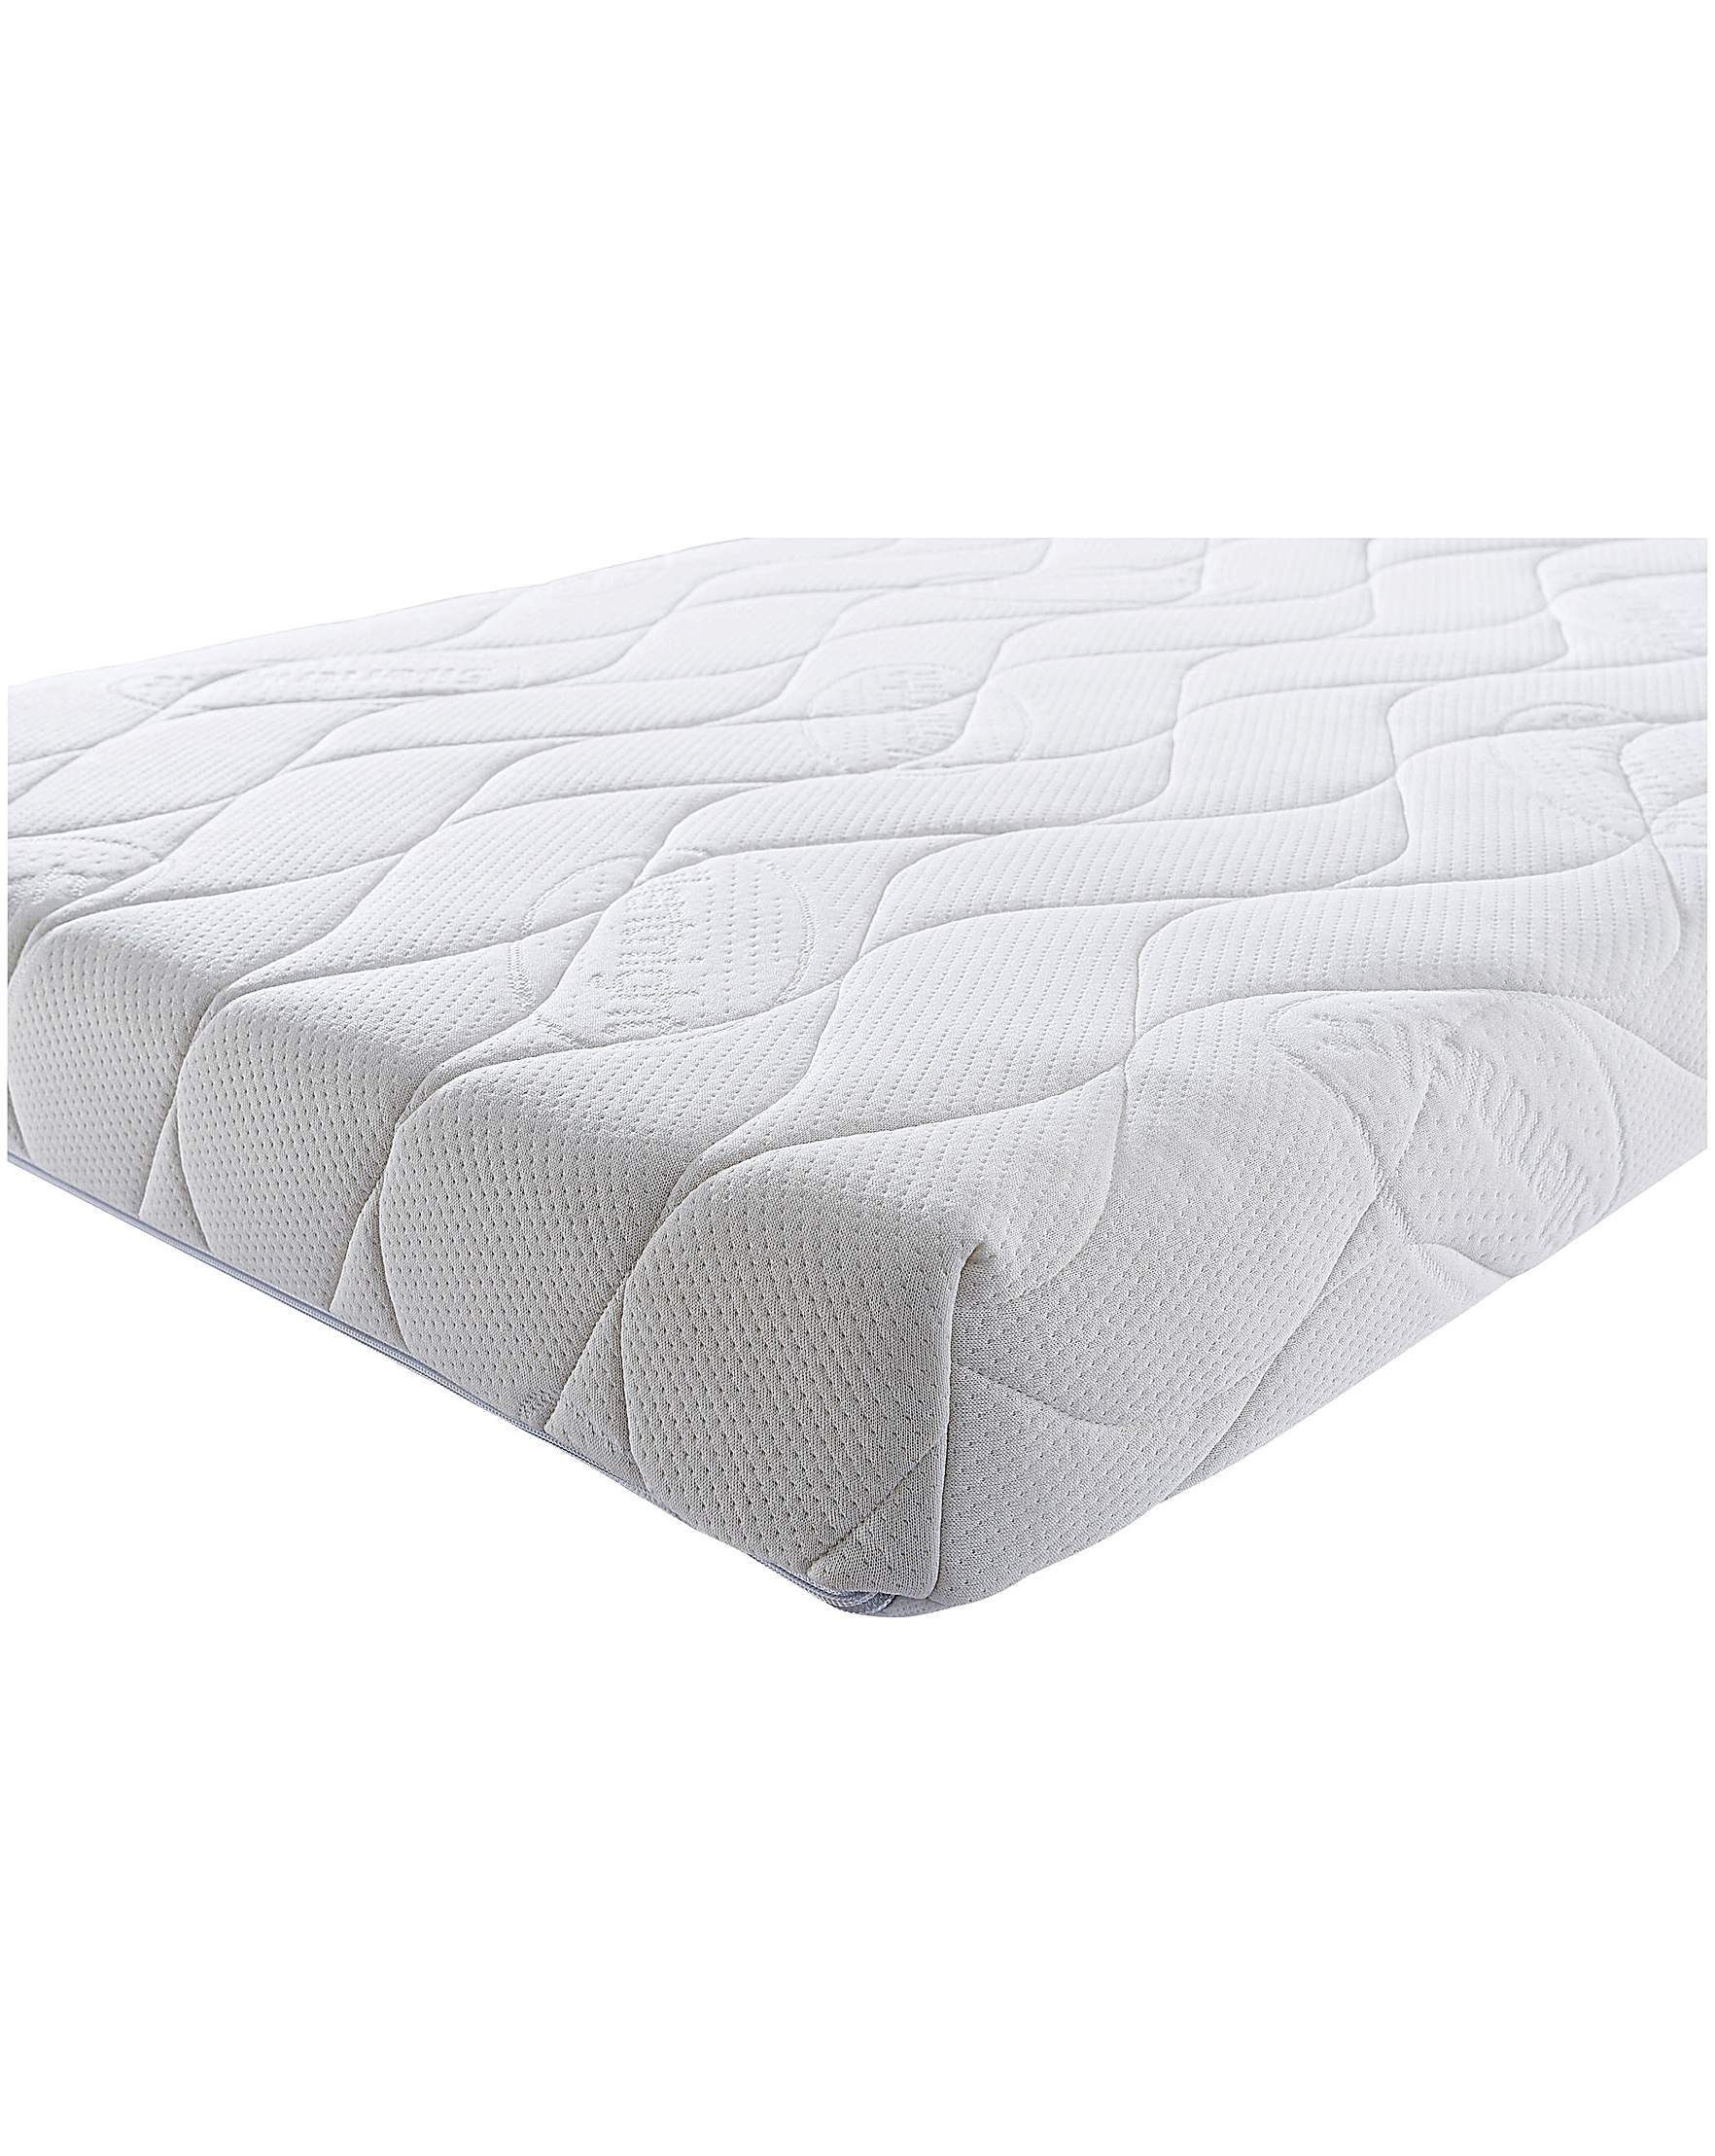 solutions topper cluster vera count mattress fiber thread sv pad wang you sealy qb how complete